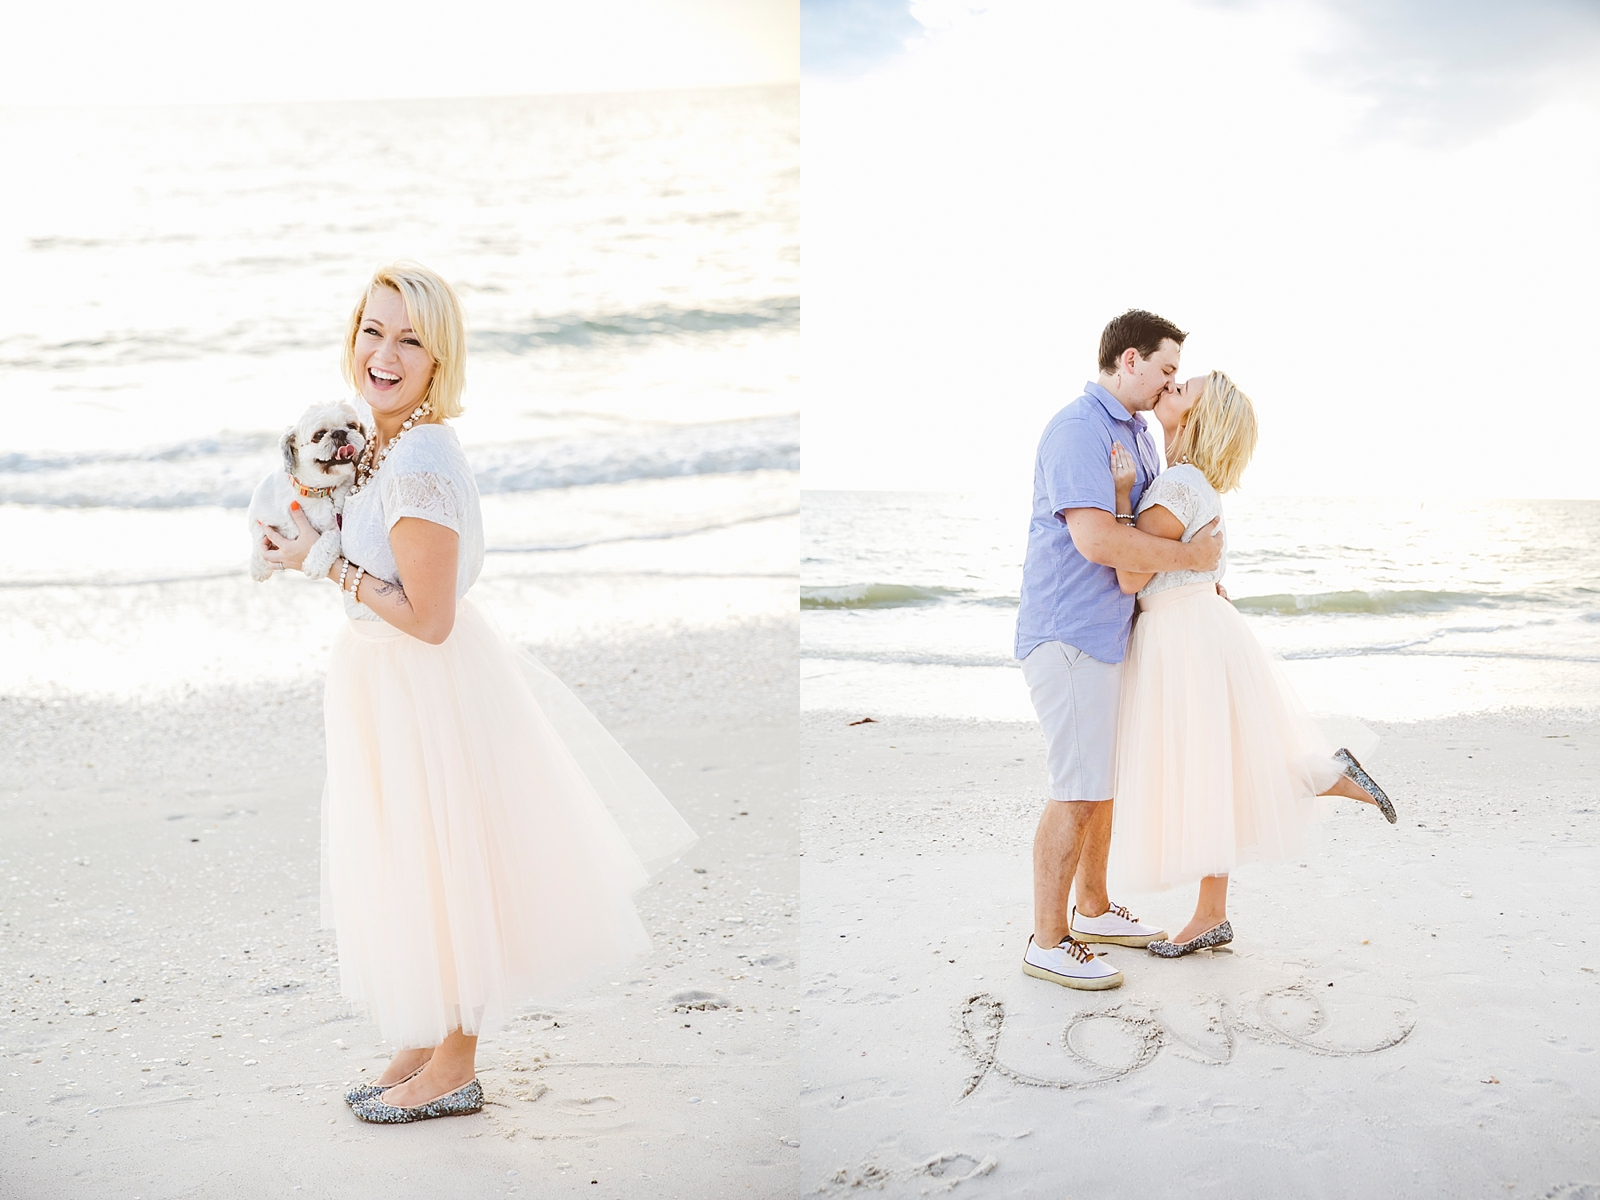 Engagement Session done in Naples Florida. I love doing destination weddings! This location was on gulf on mexico, with stunning beaches and beautiful sunsets.